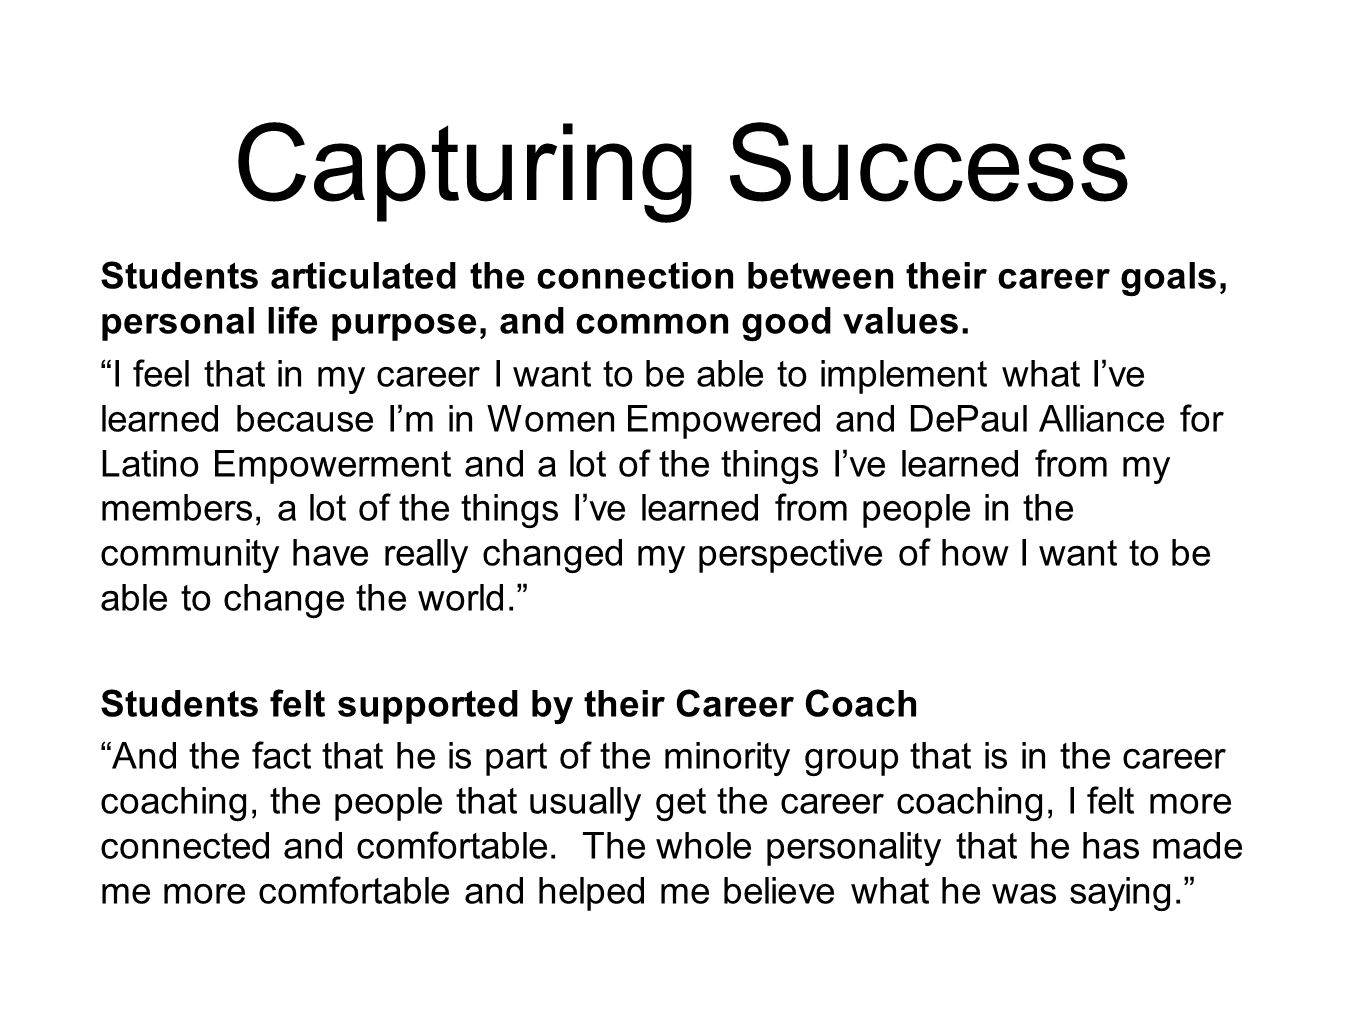 Capturing Success Students articulated the connection between their career goals, personal life purpose, and common good values.